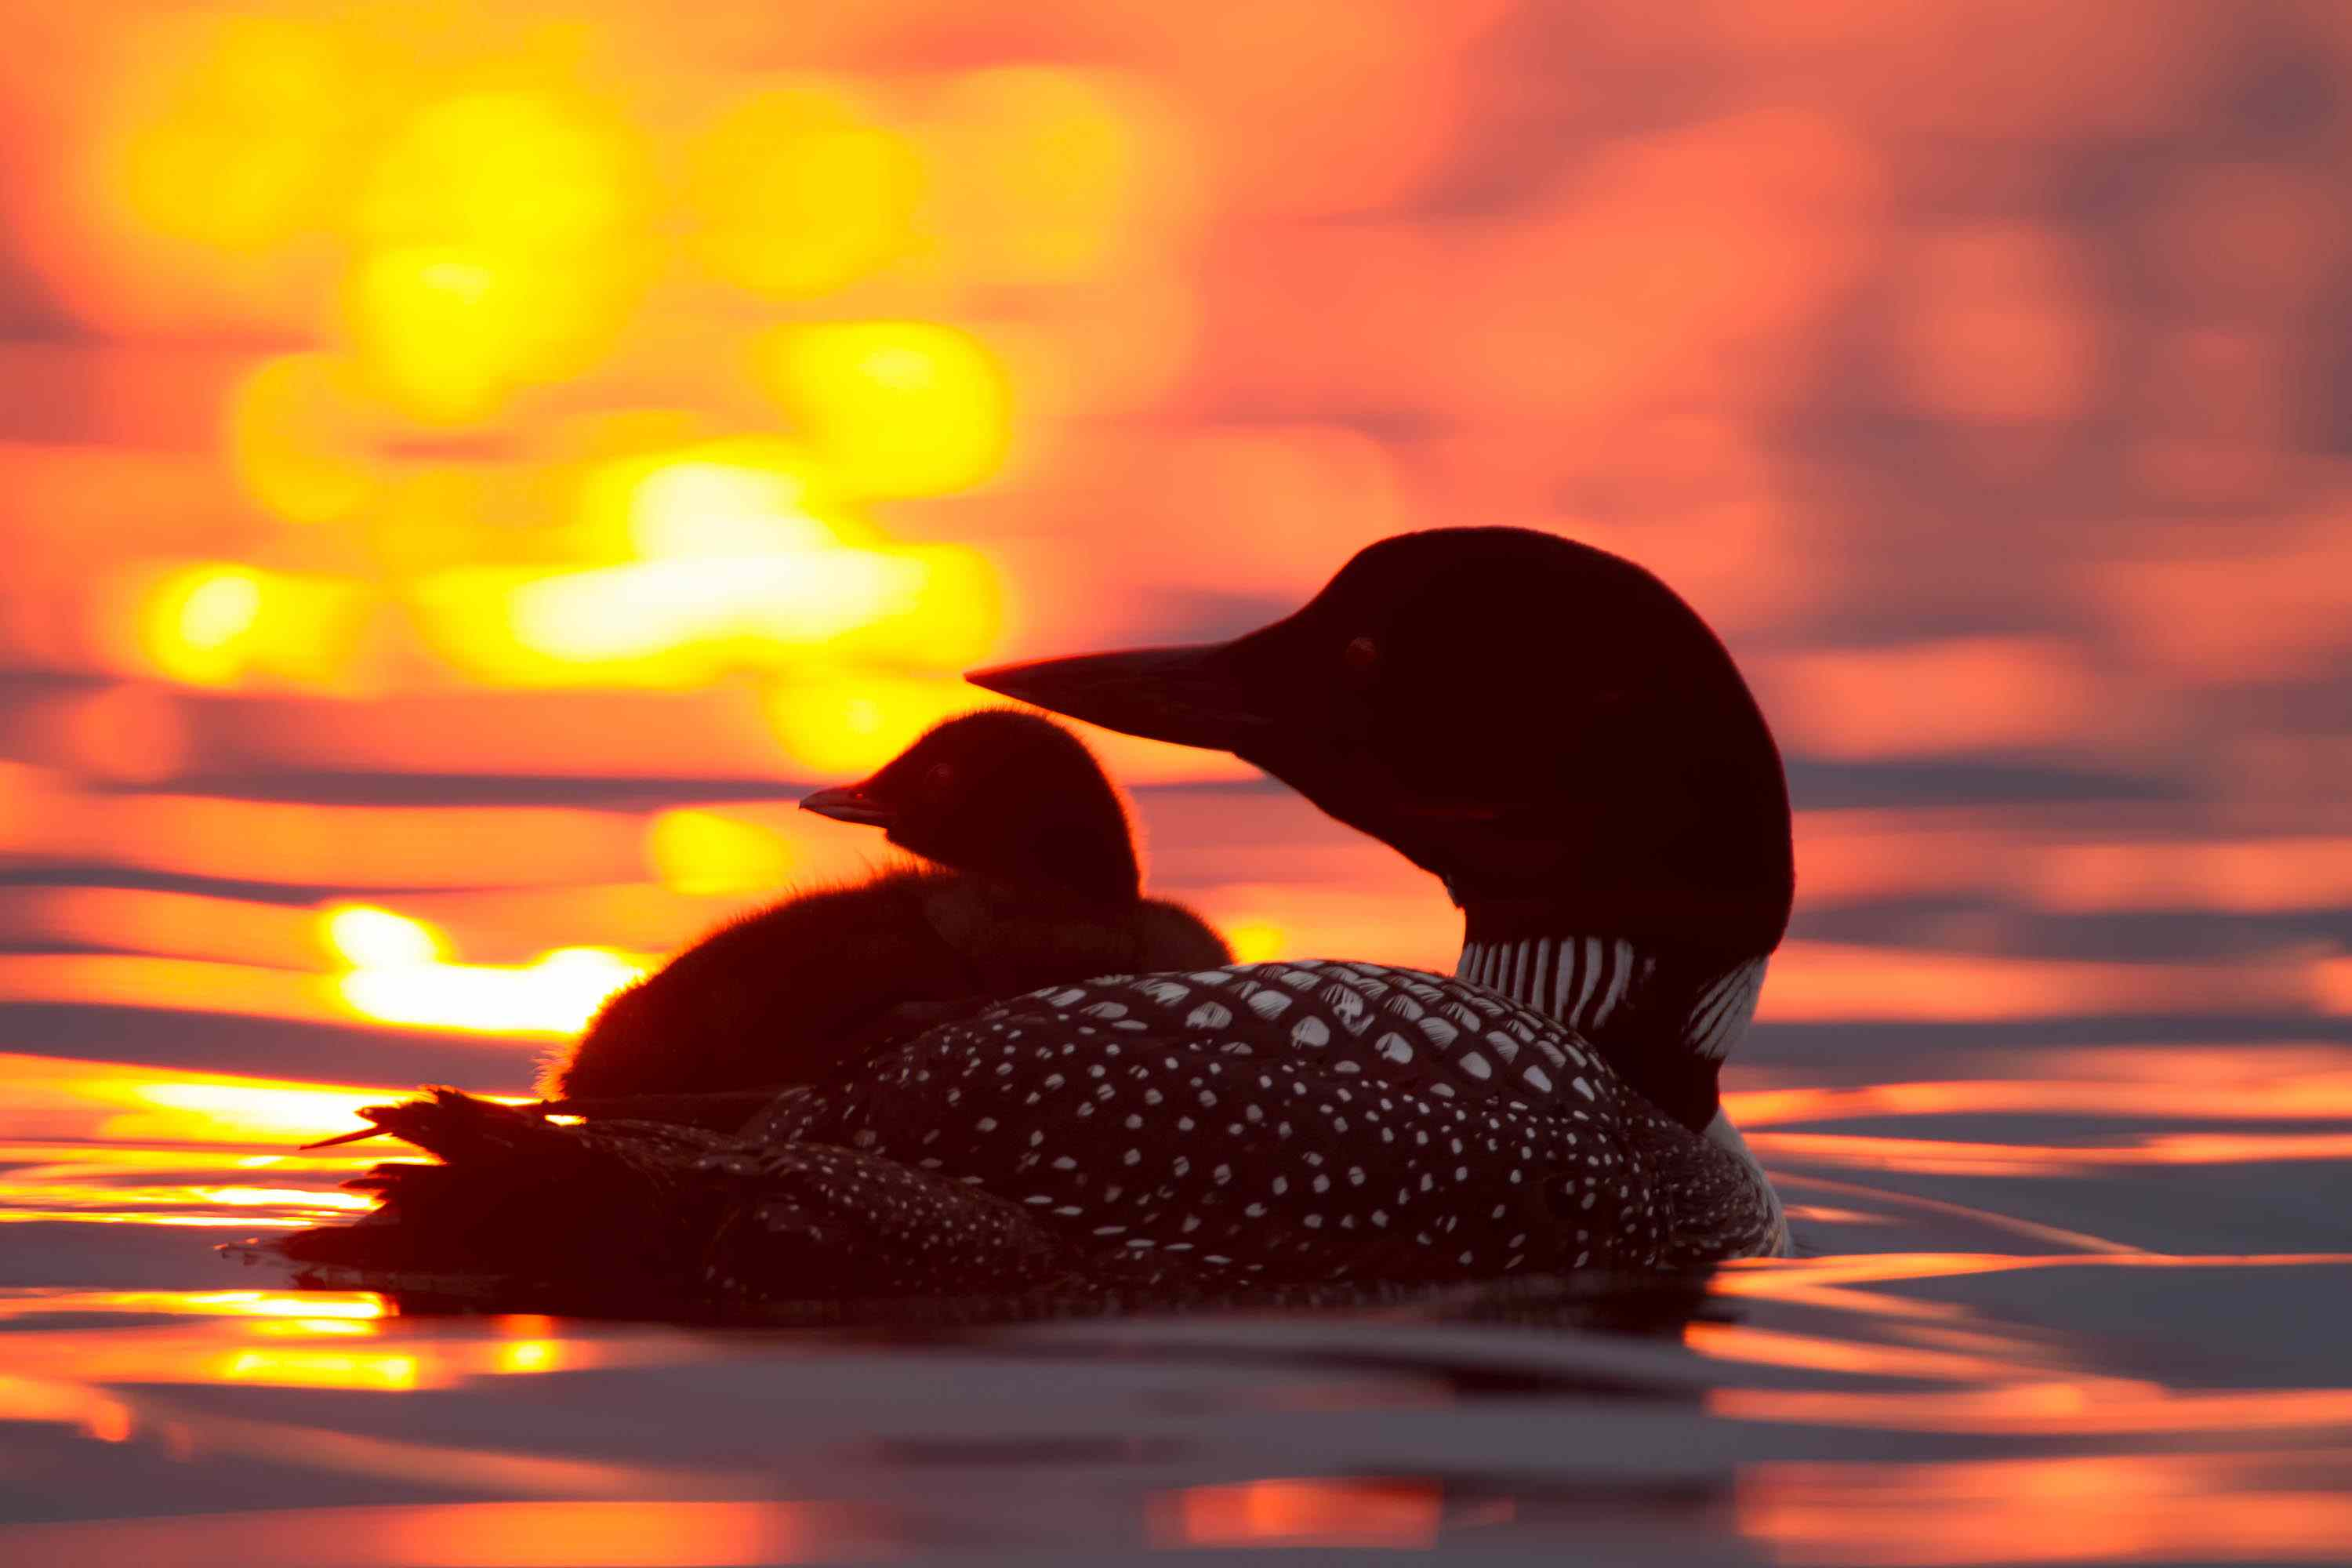 common loon, wildlife watching as meditation